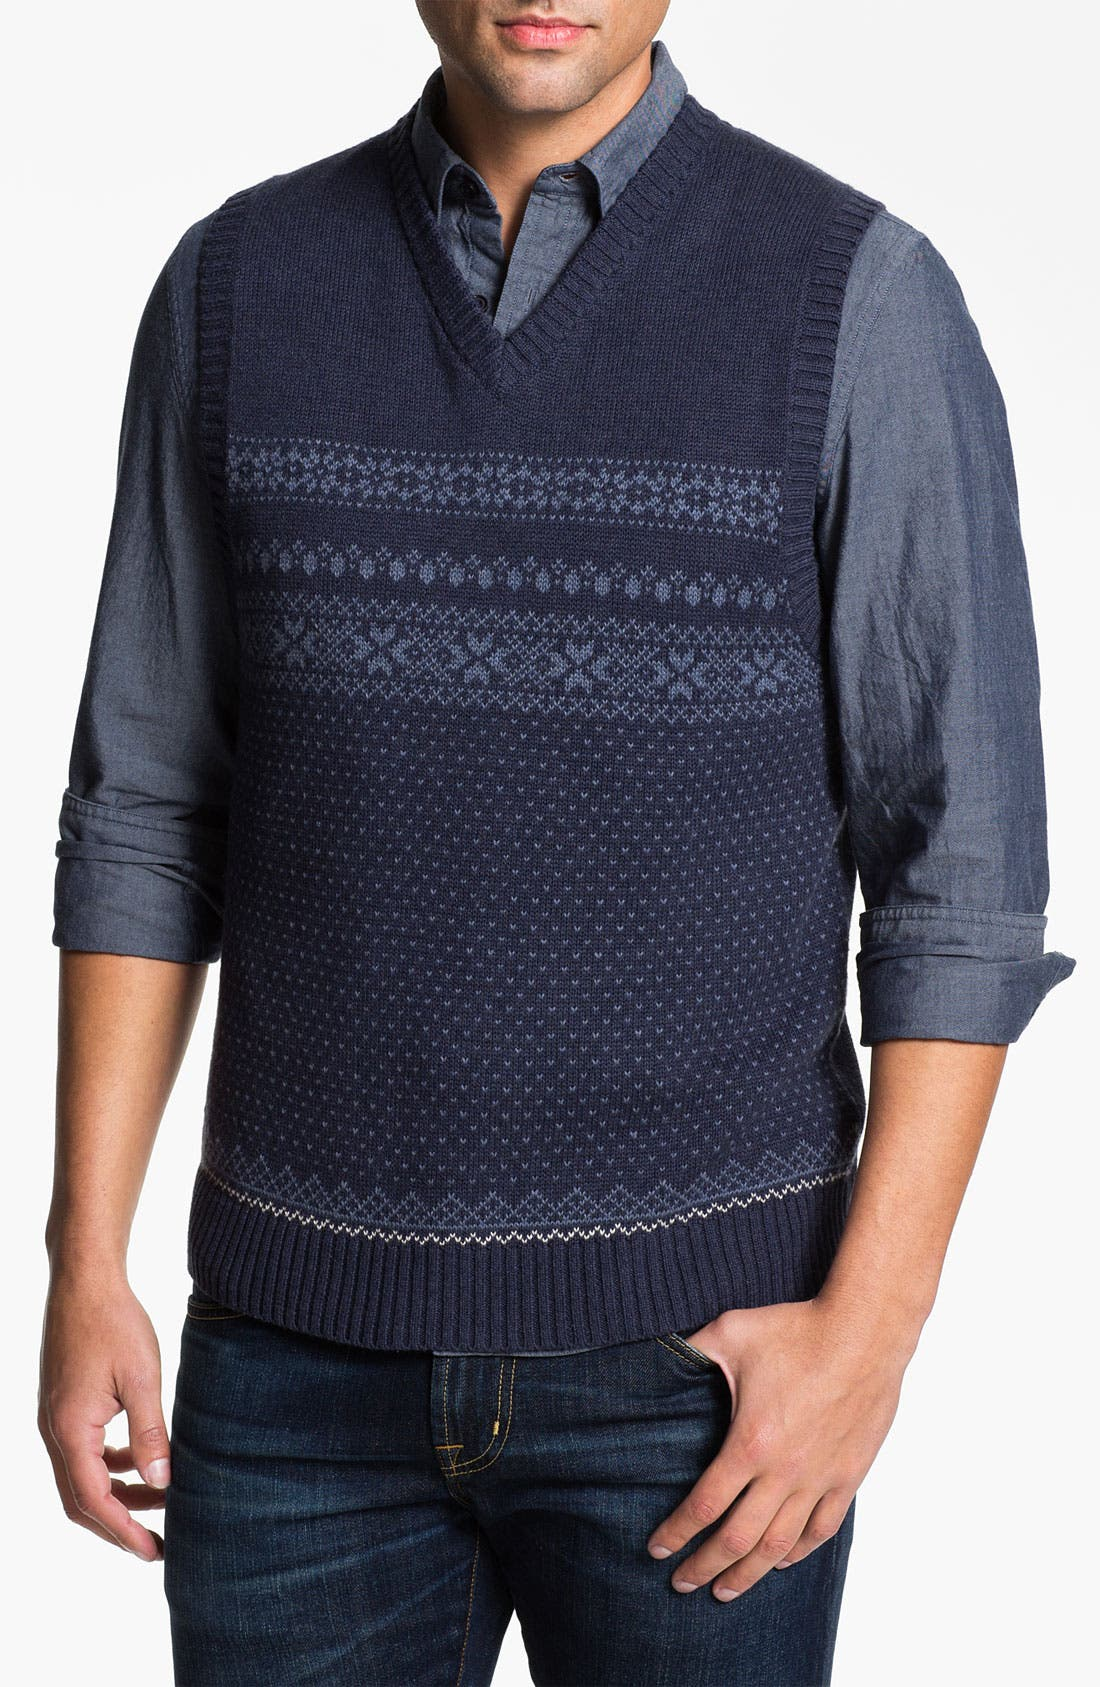 Alternate Image 1 Selected - Wallin & Bros. Fair Isle V-Neck Sweater Vest